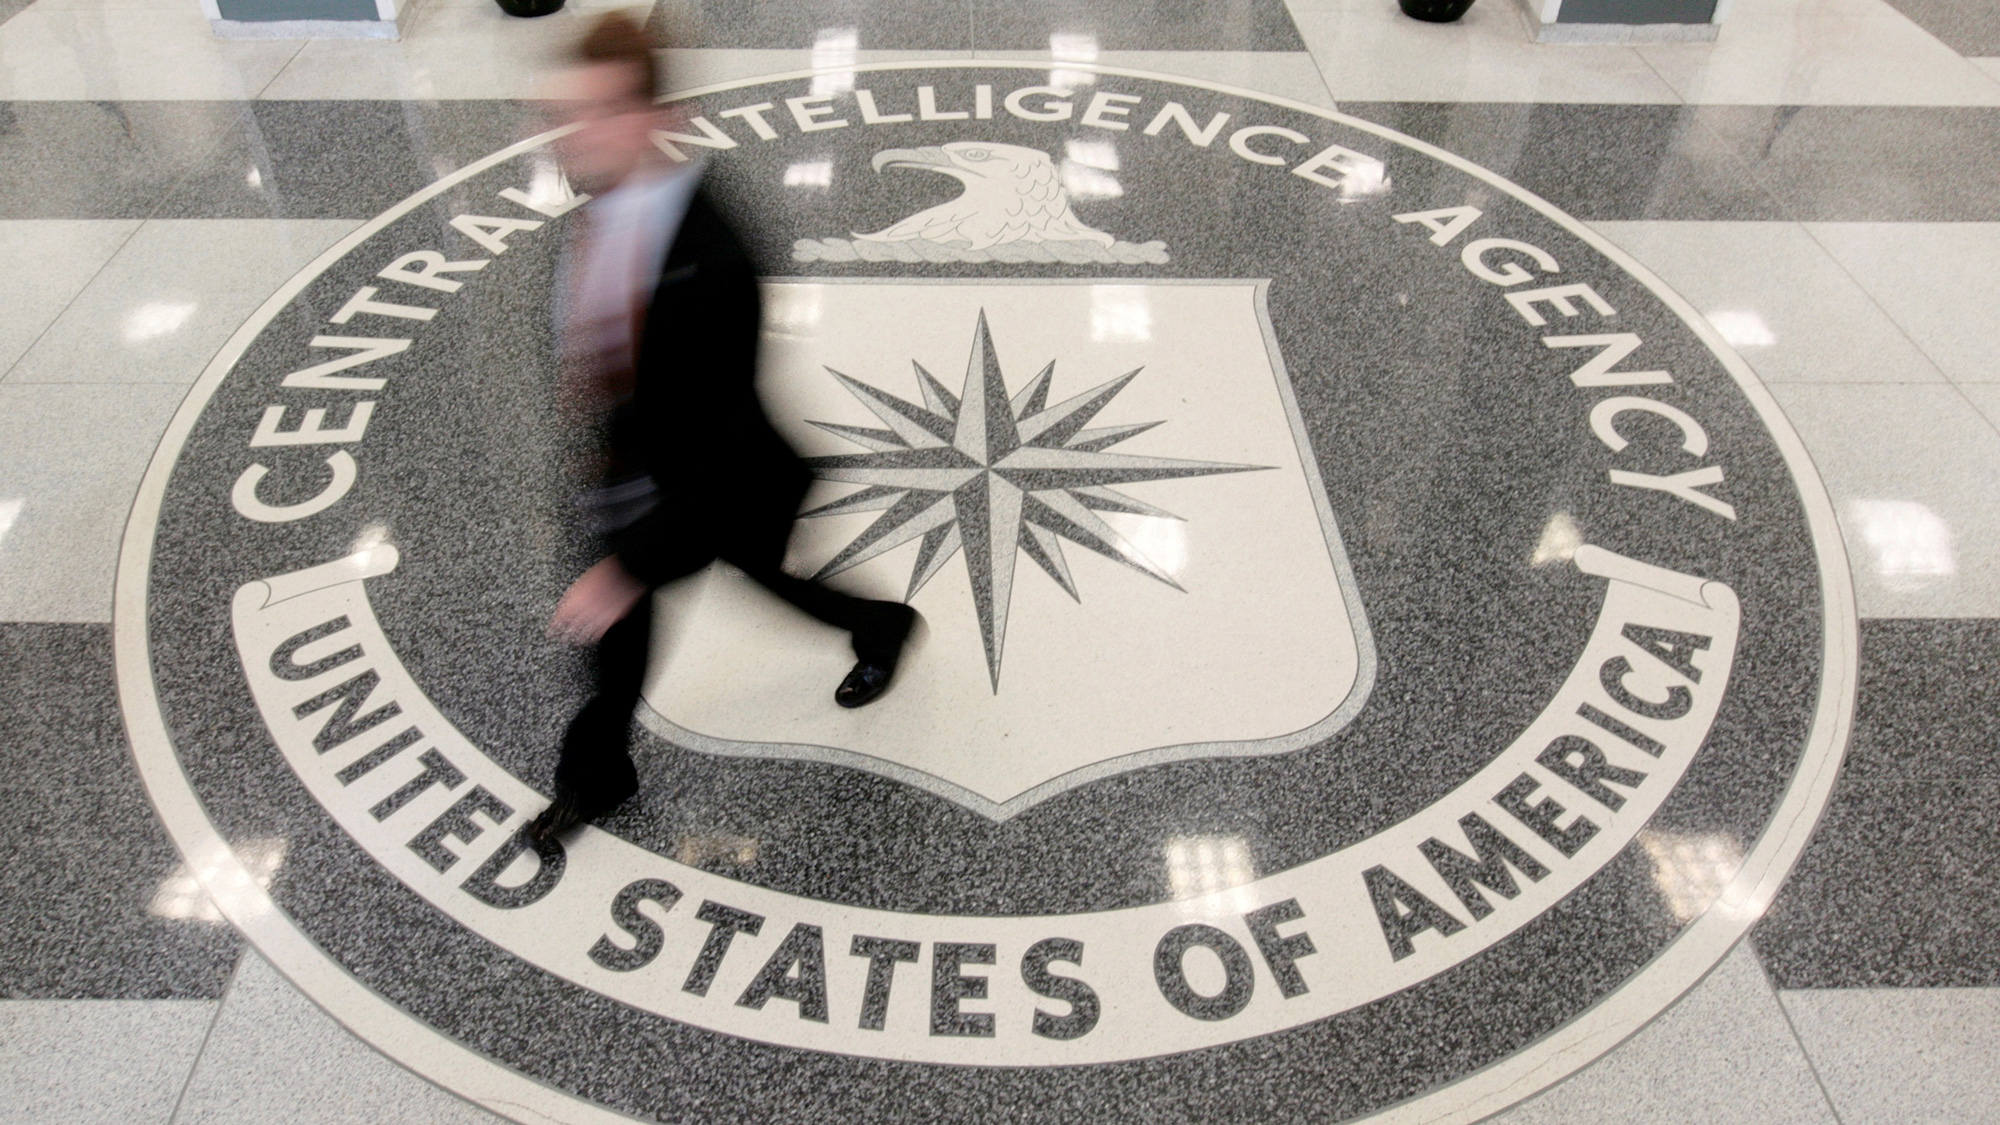 A man's image is blurred as he walks across a giant marble seal in the floor of the CIA headquarters in Langley, Virginia.